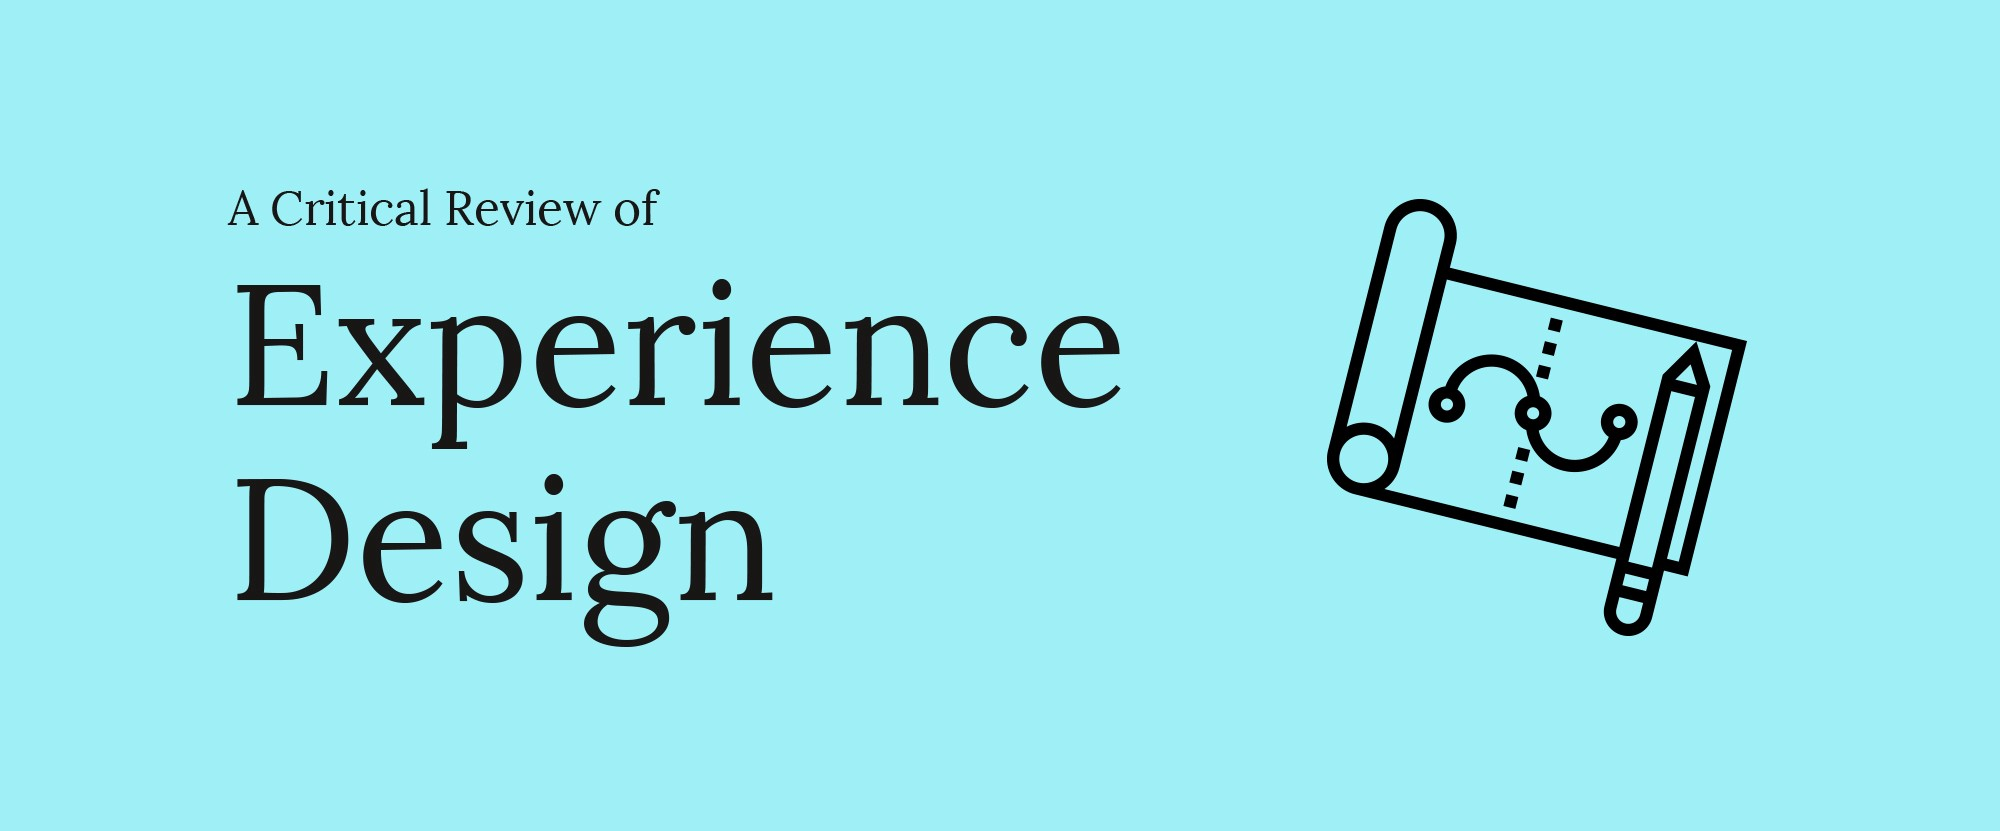 a critical review of experience design ux collective